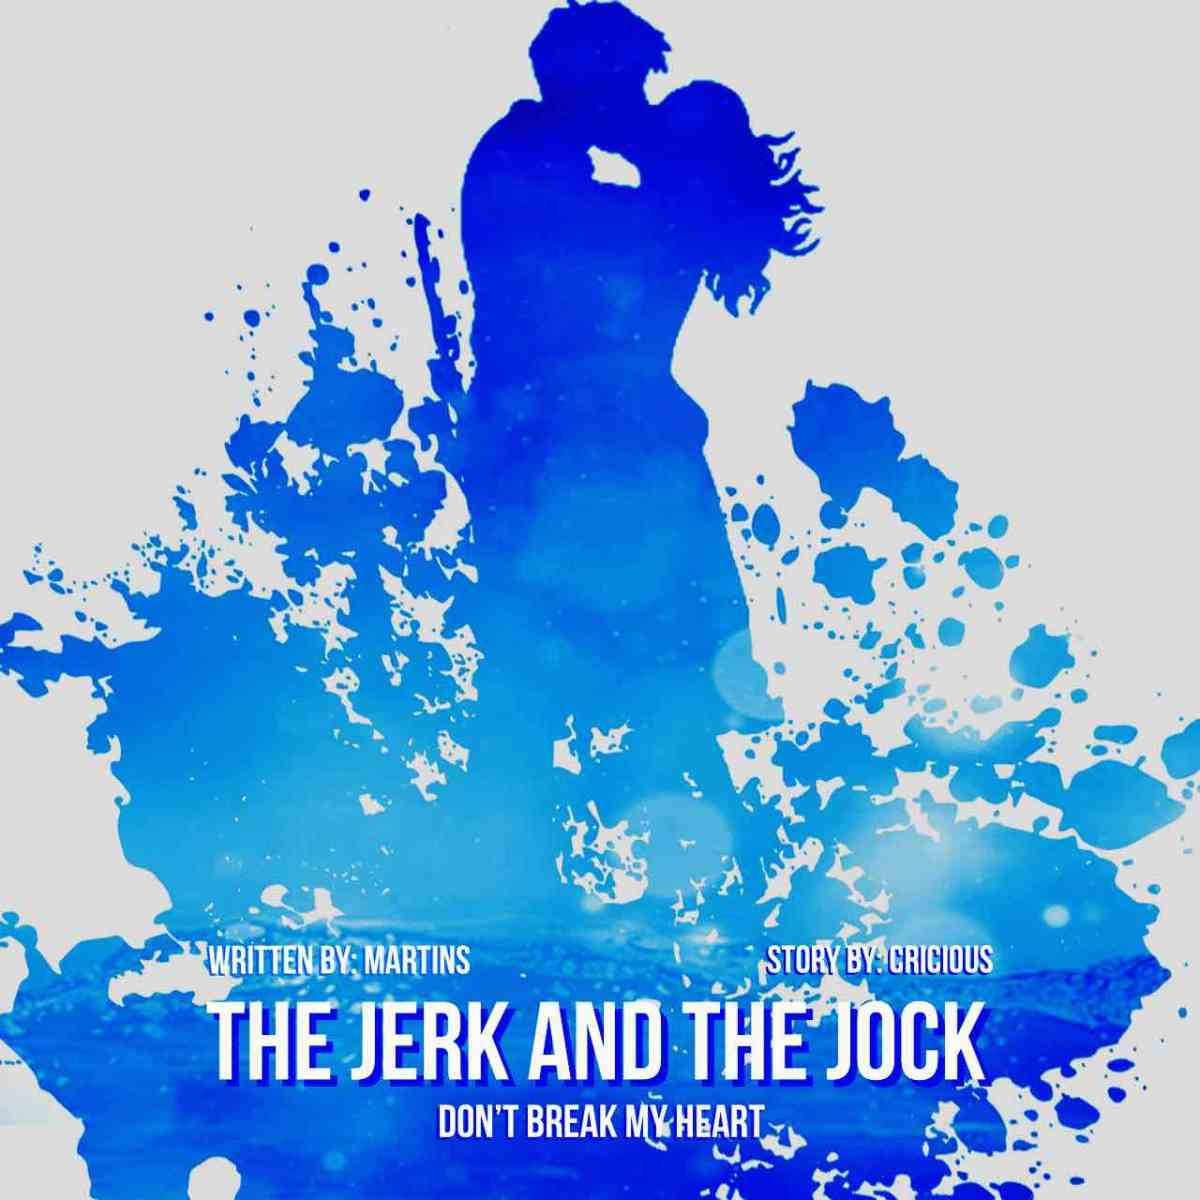 The Jerk and the Jock